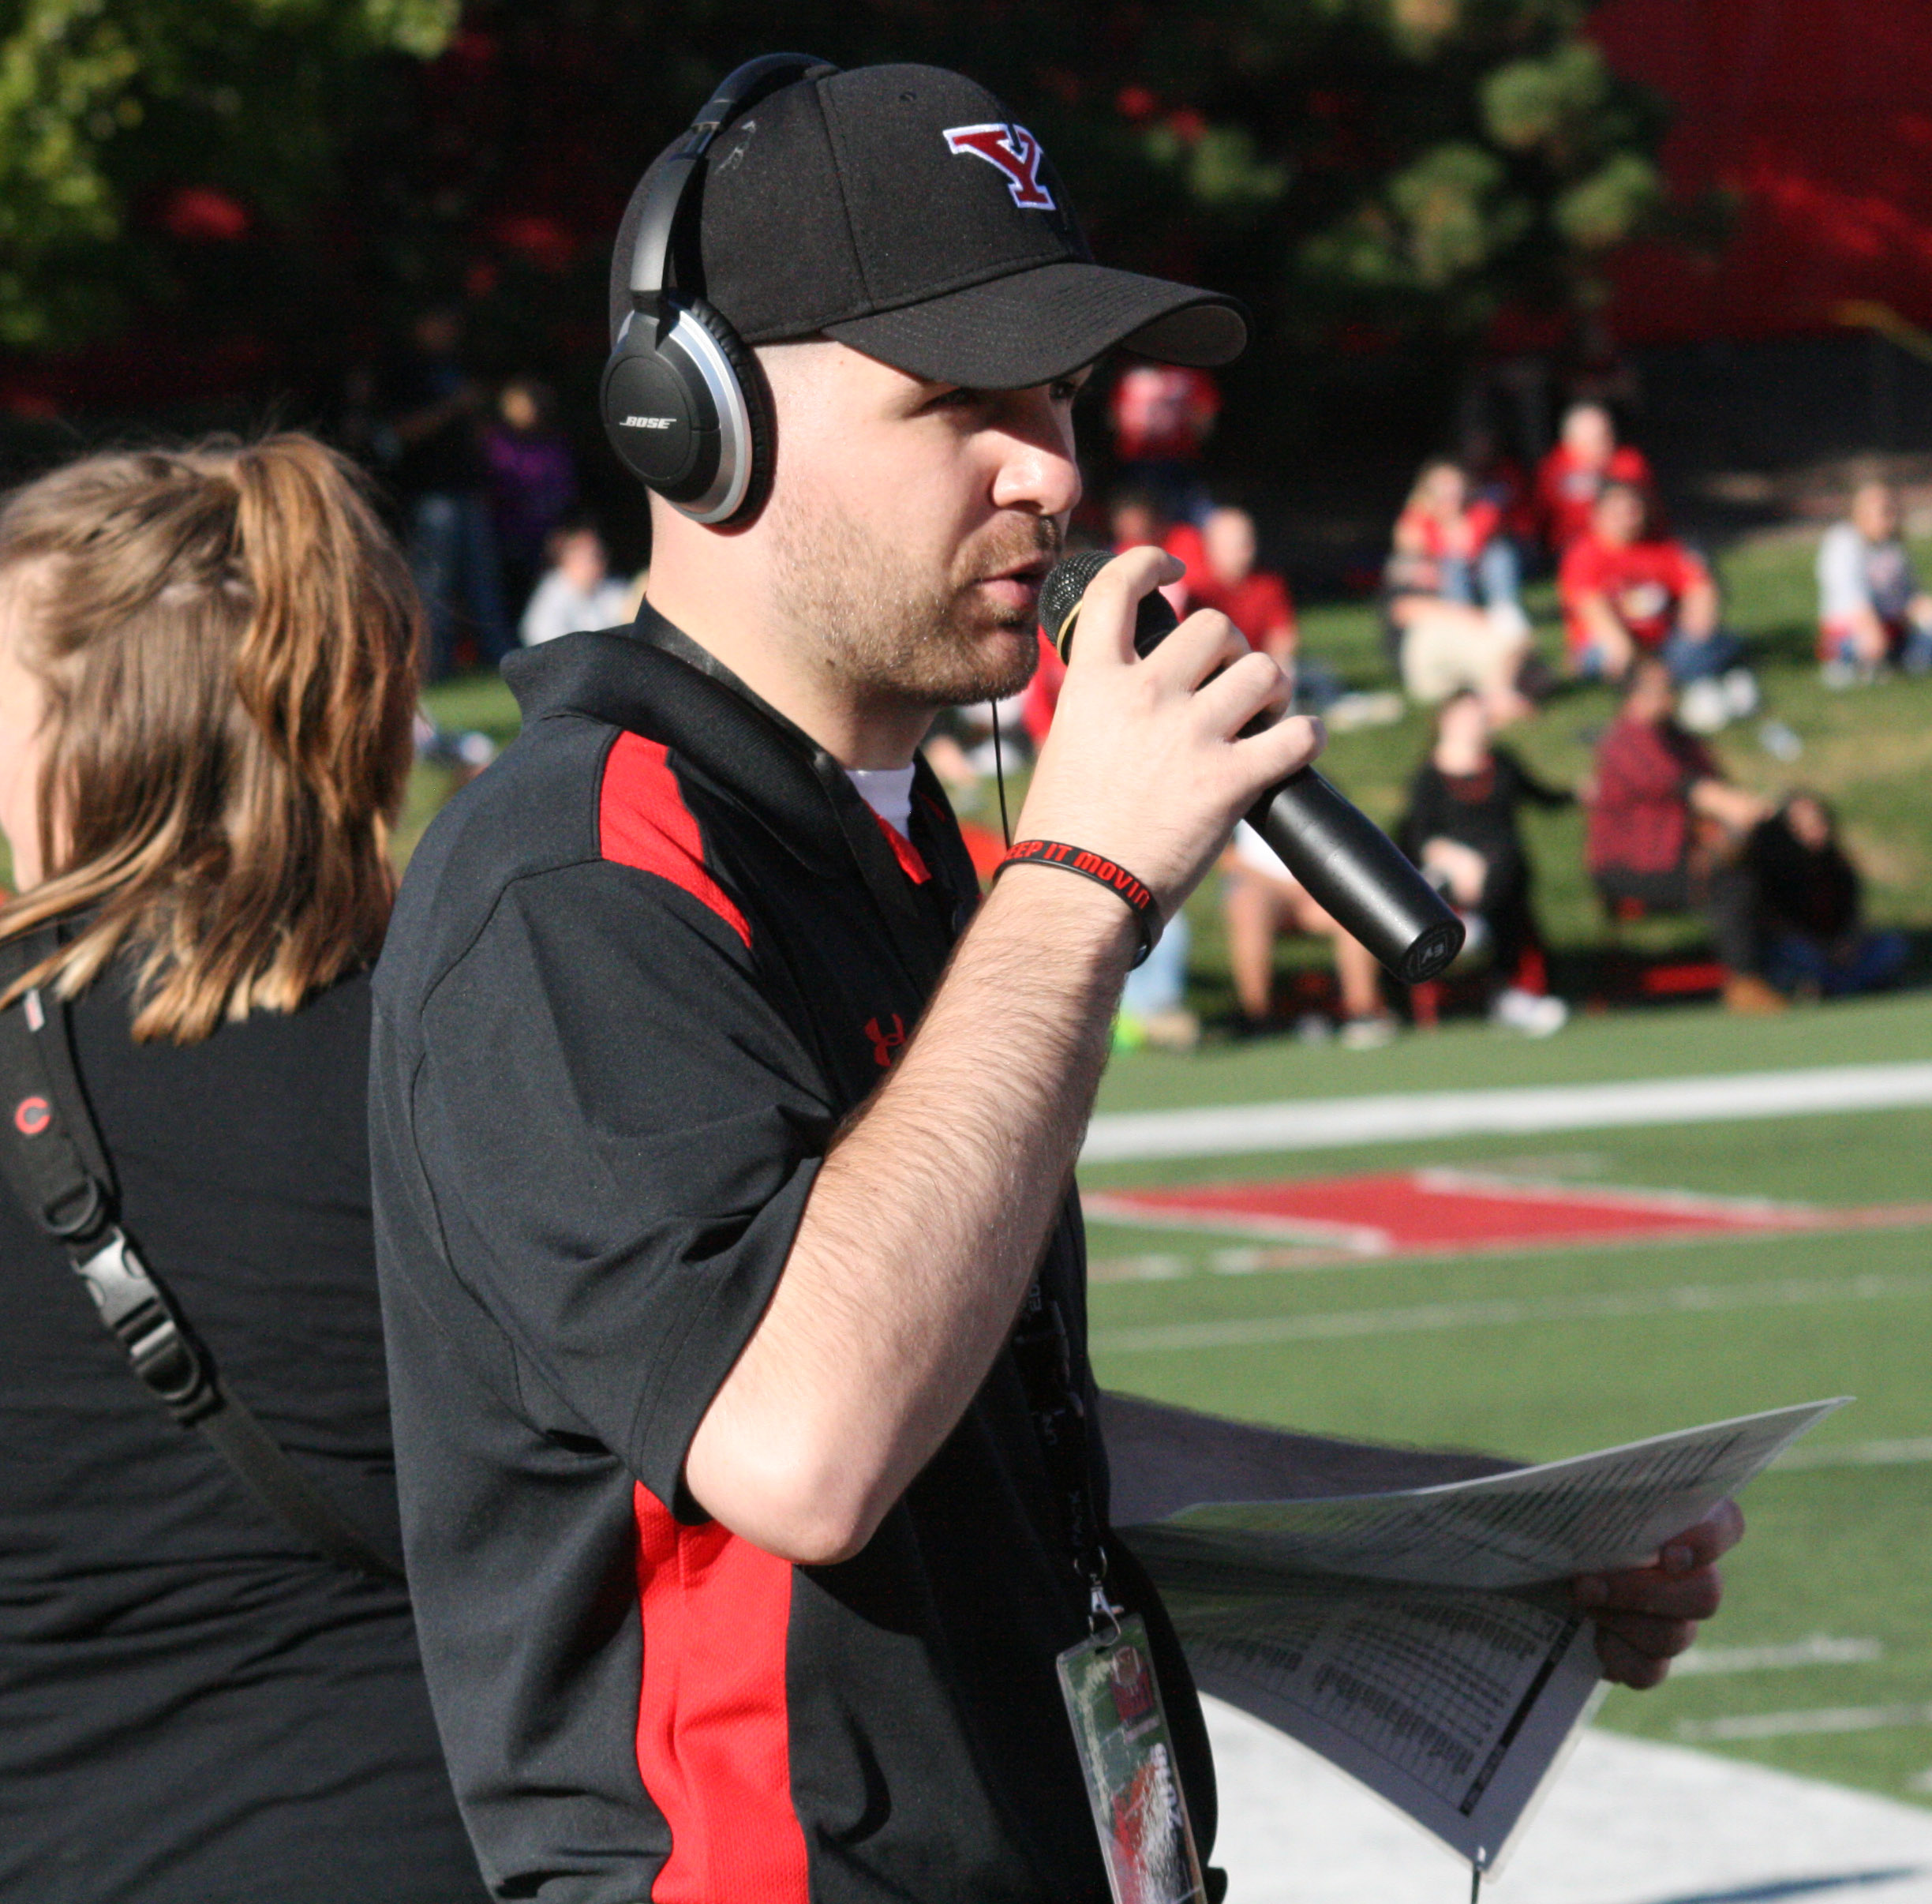 Reporting from the sidelines during a YSU Football radio broadcast on at Illinois State on October 8, 2016.